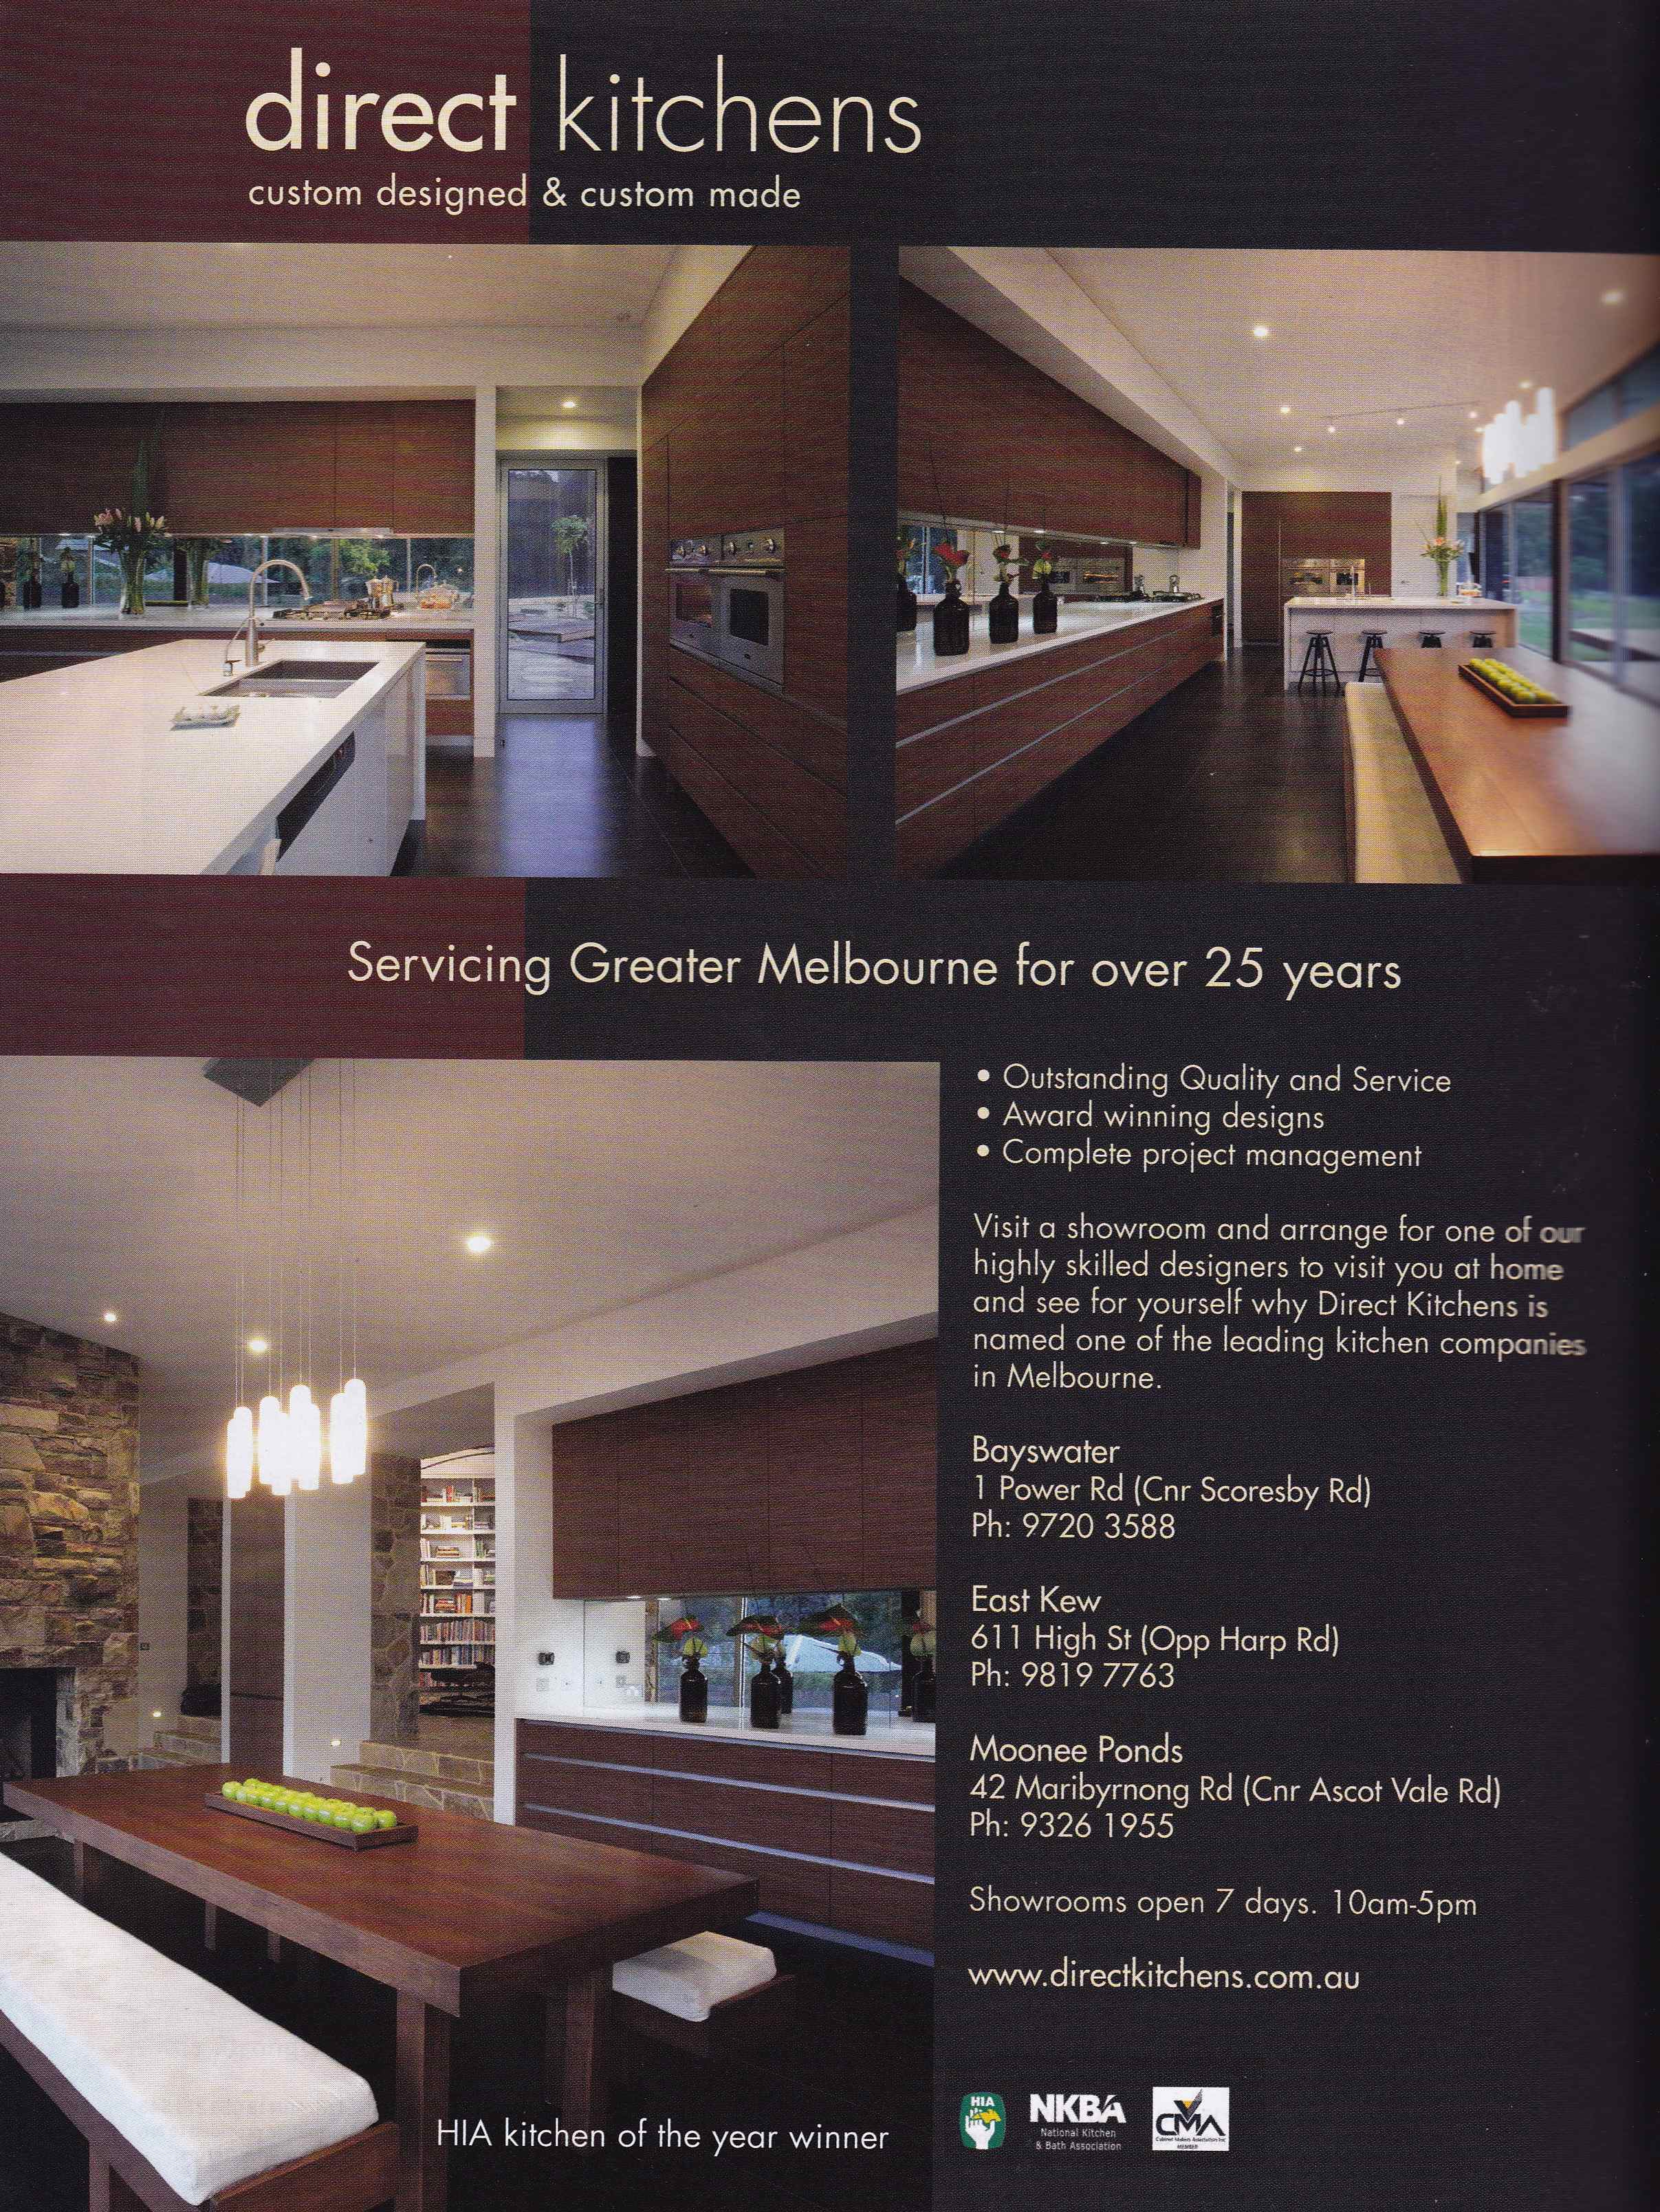 House and Garden-Full page advertisement Direct Kitchens